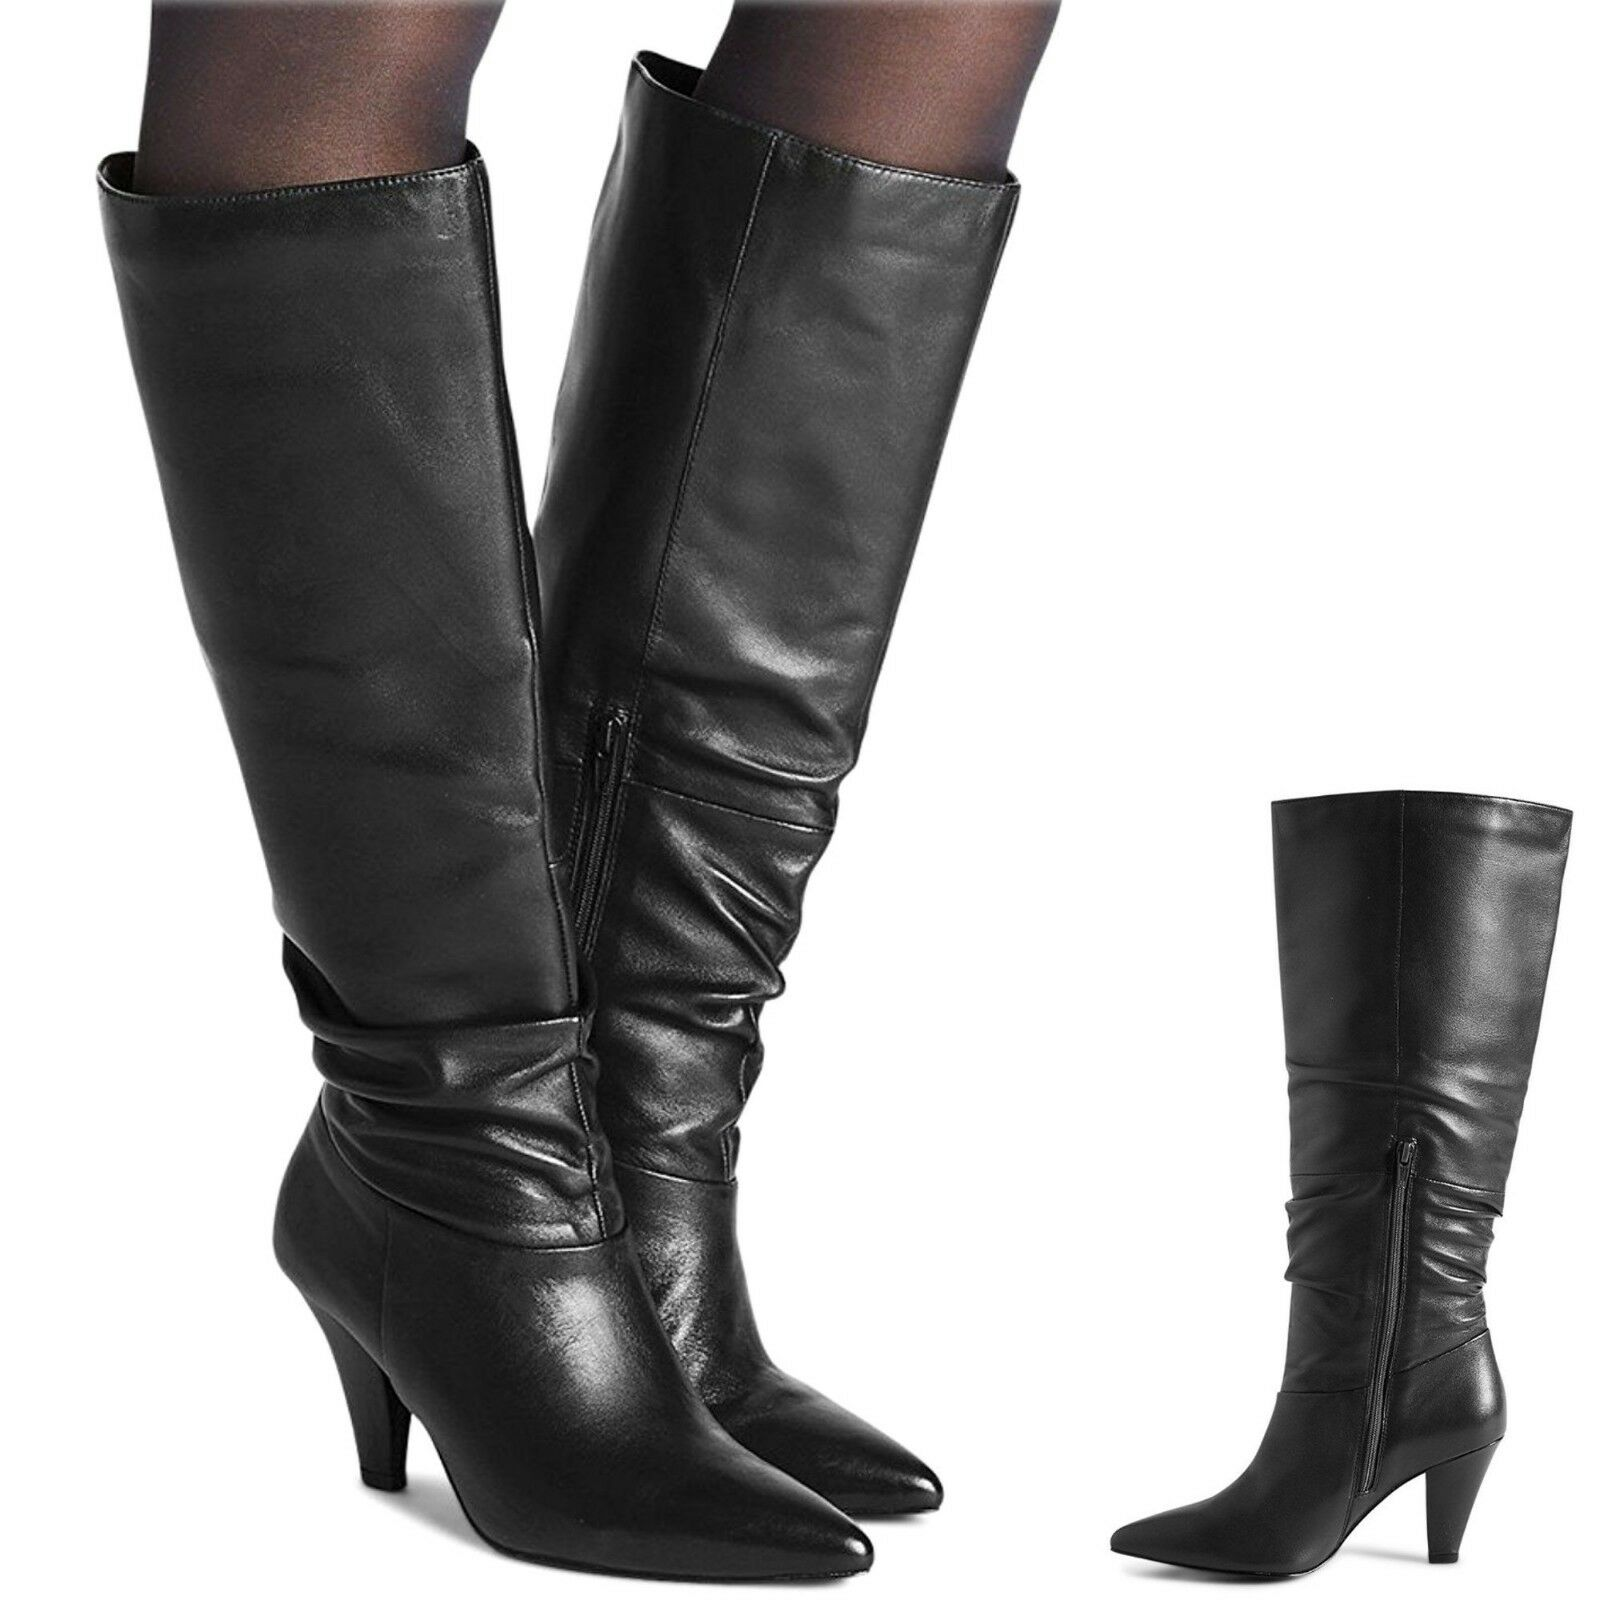 M&S Real LEATHER LEATHER Real High Heel KNEE High Stiefel  Größe 7  BLACK (rrp ) 7196d3